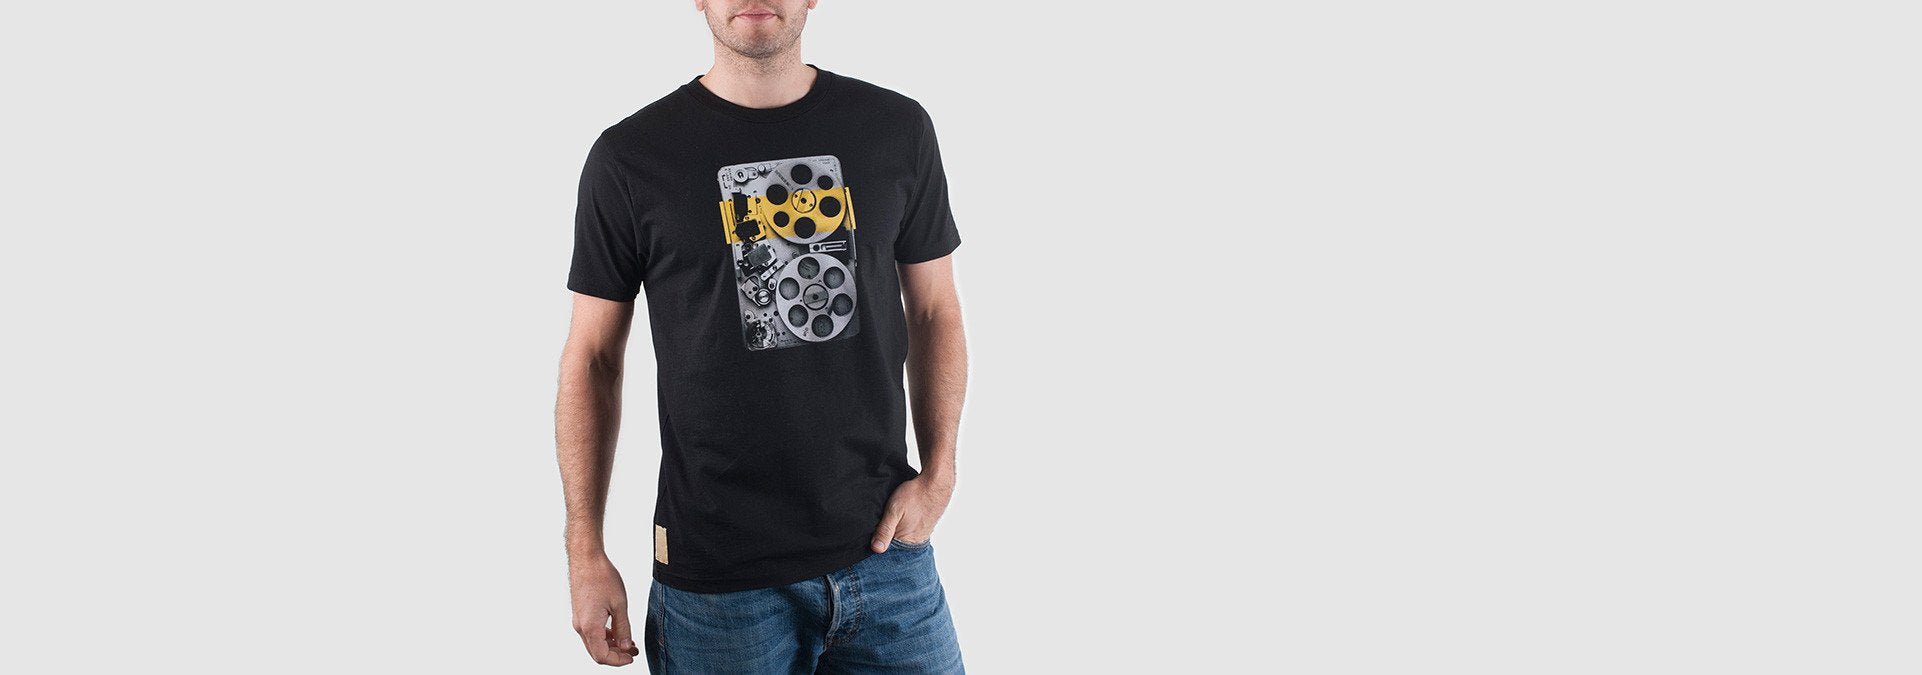 Loop T-Shirt Black